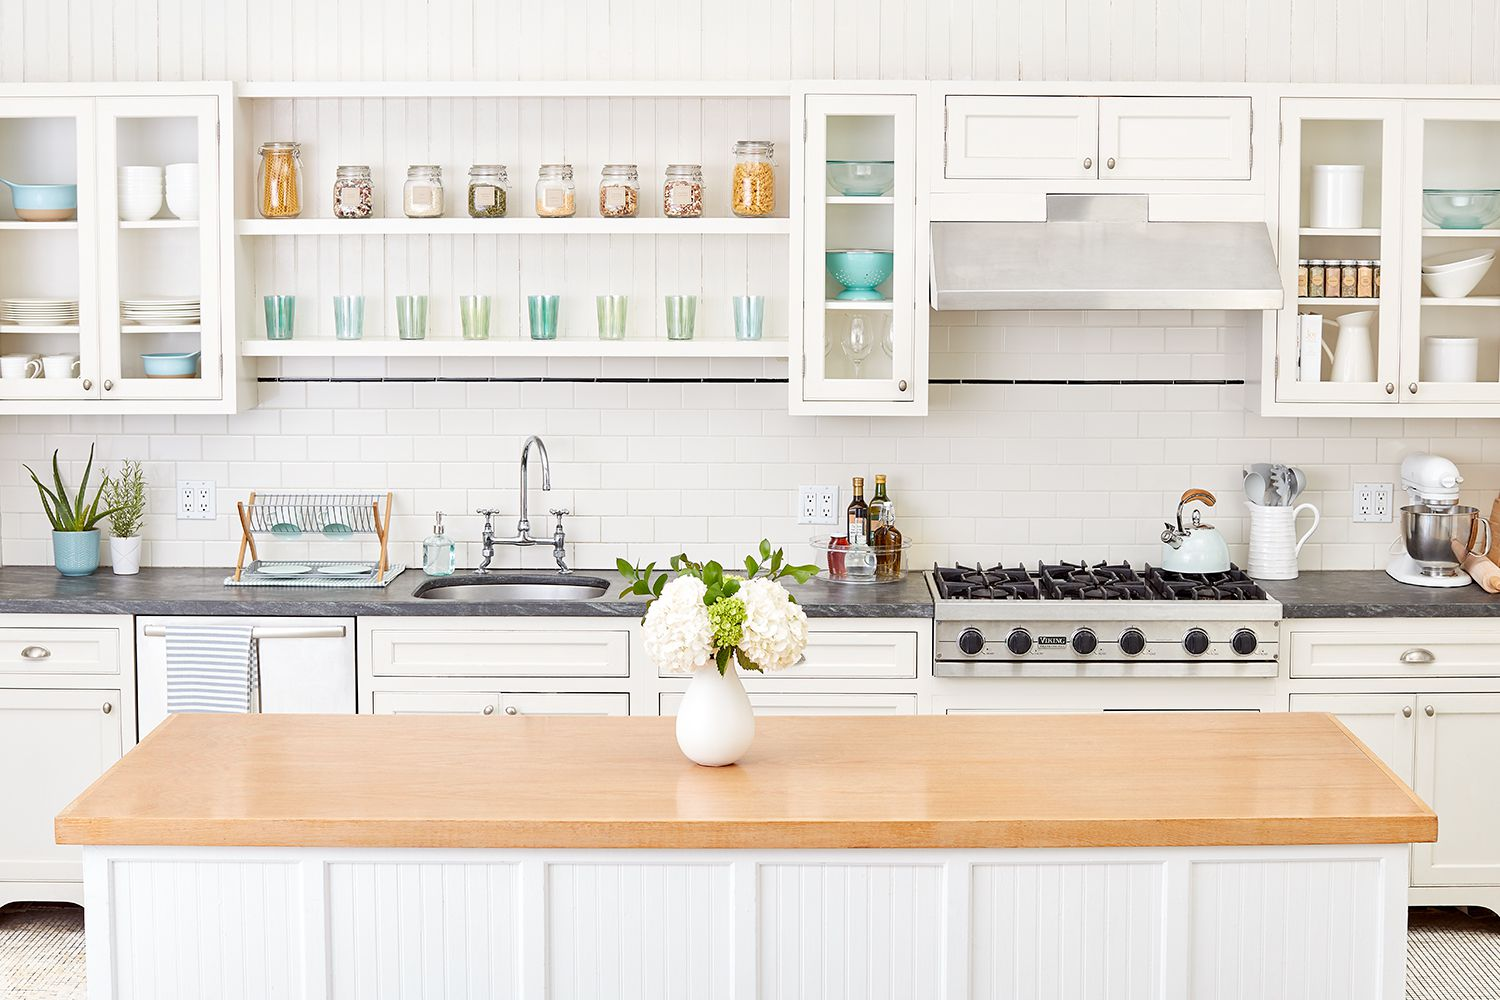 A Checklist for How To Store Every Item You Use in Your Kitchen